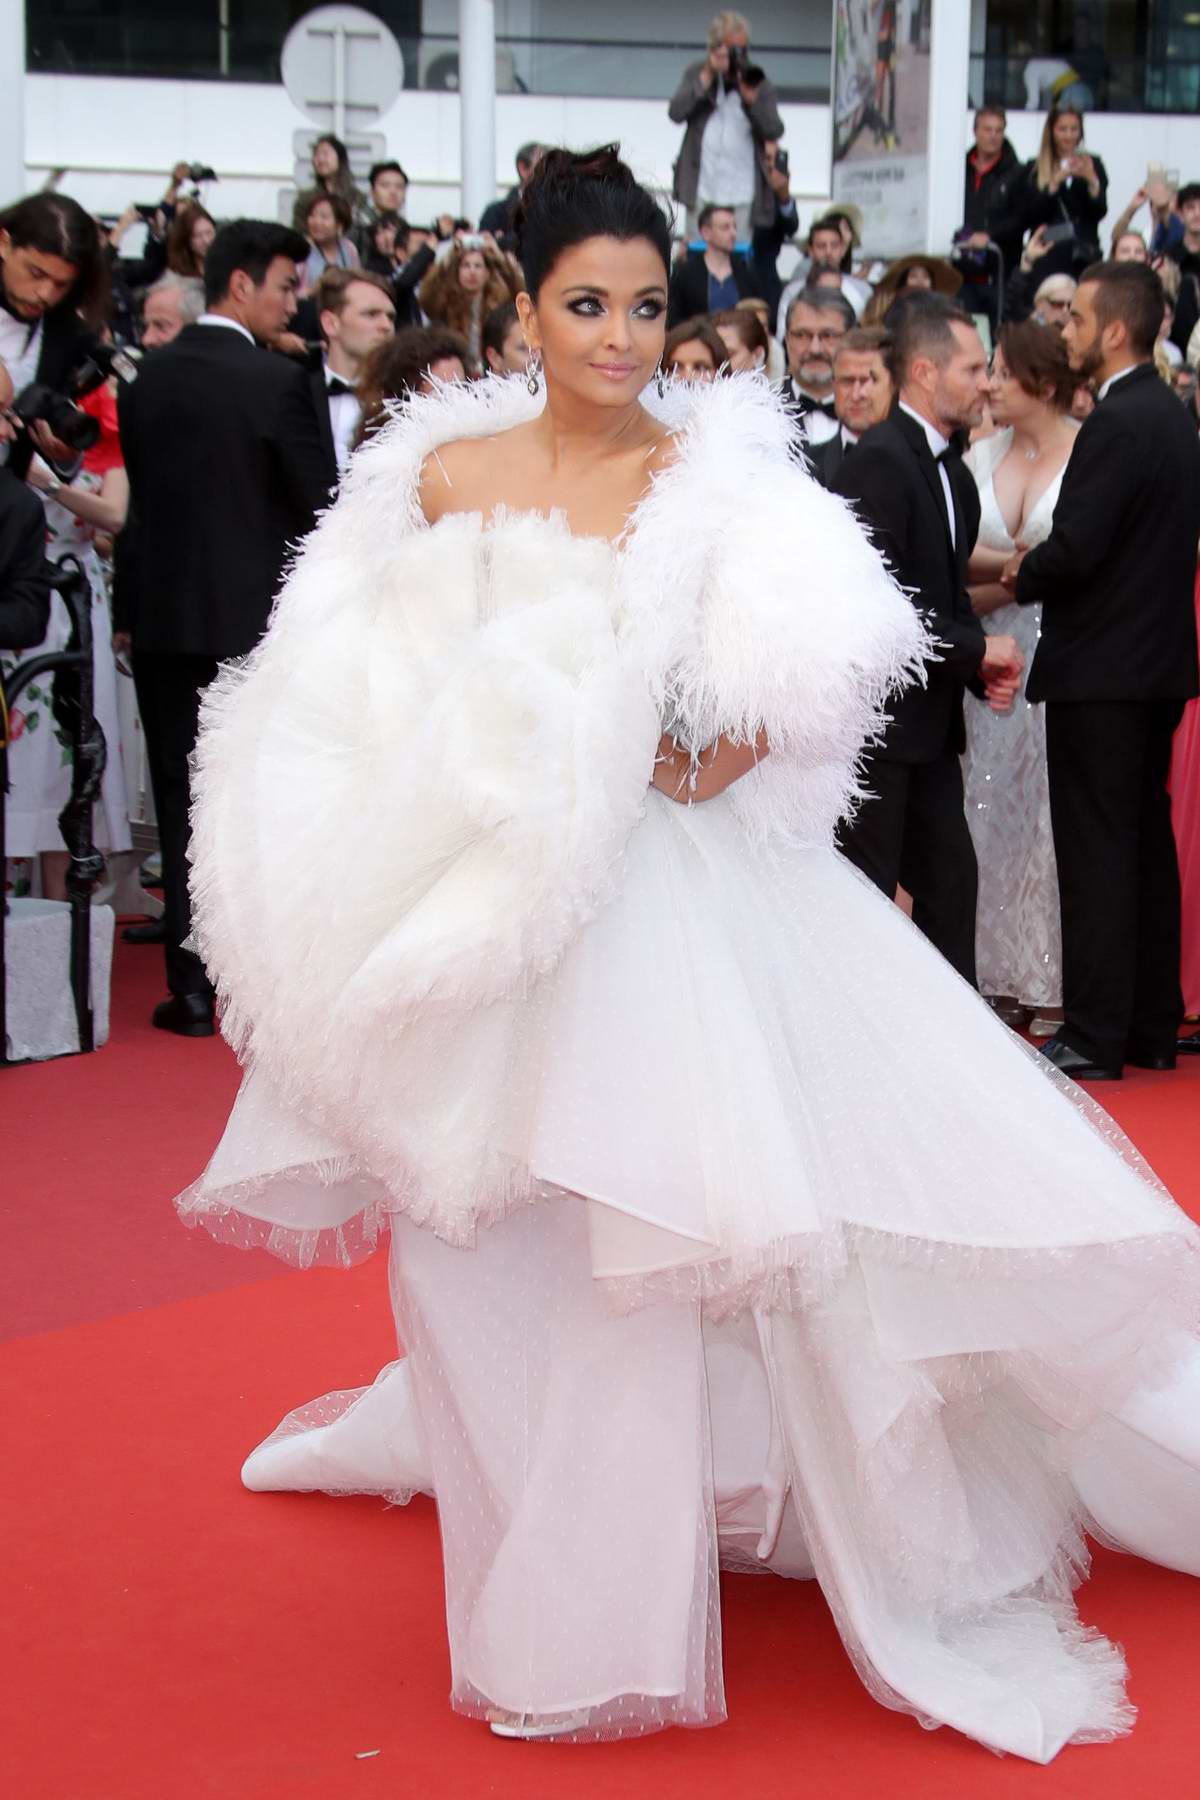 Aishwarya Rai Bachchan attends the screening of 'La Belle Epoque' during the 72nd annual Cannes Film Festival in Cannes, France